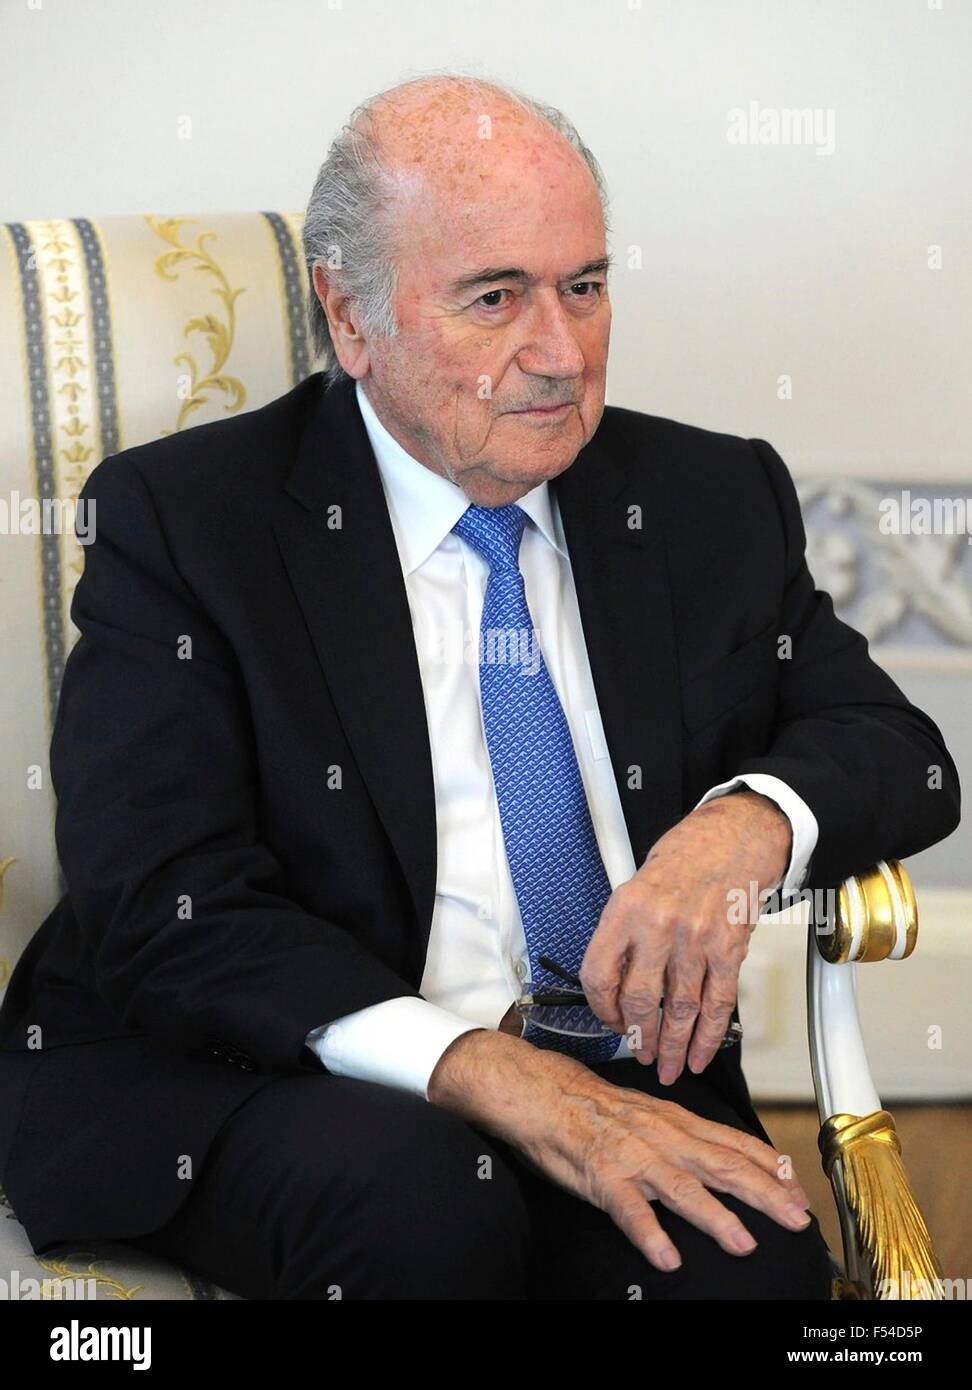 President of the International Federation of Football Associations Sepp Blatter during a meeting with Russian President - Stock Image